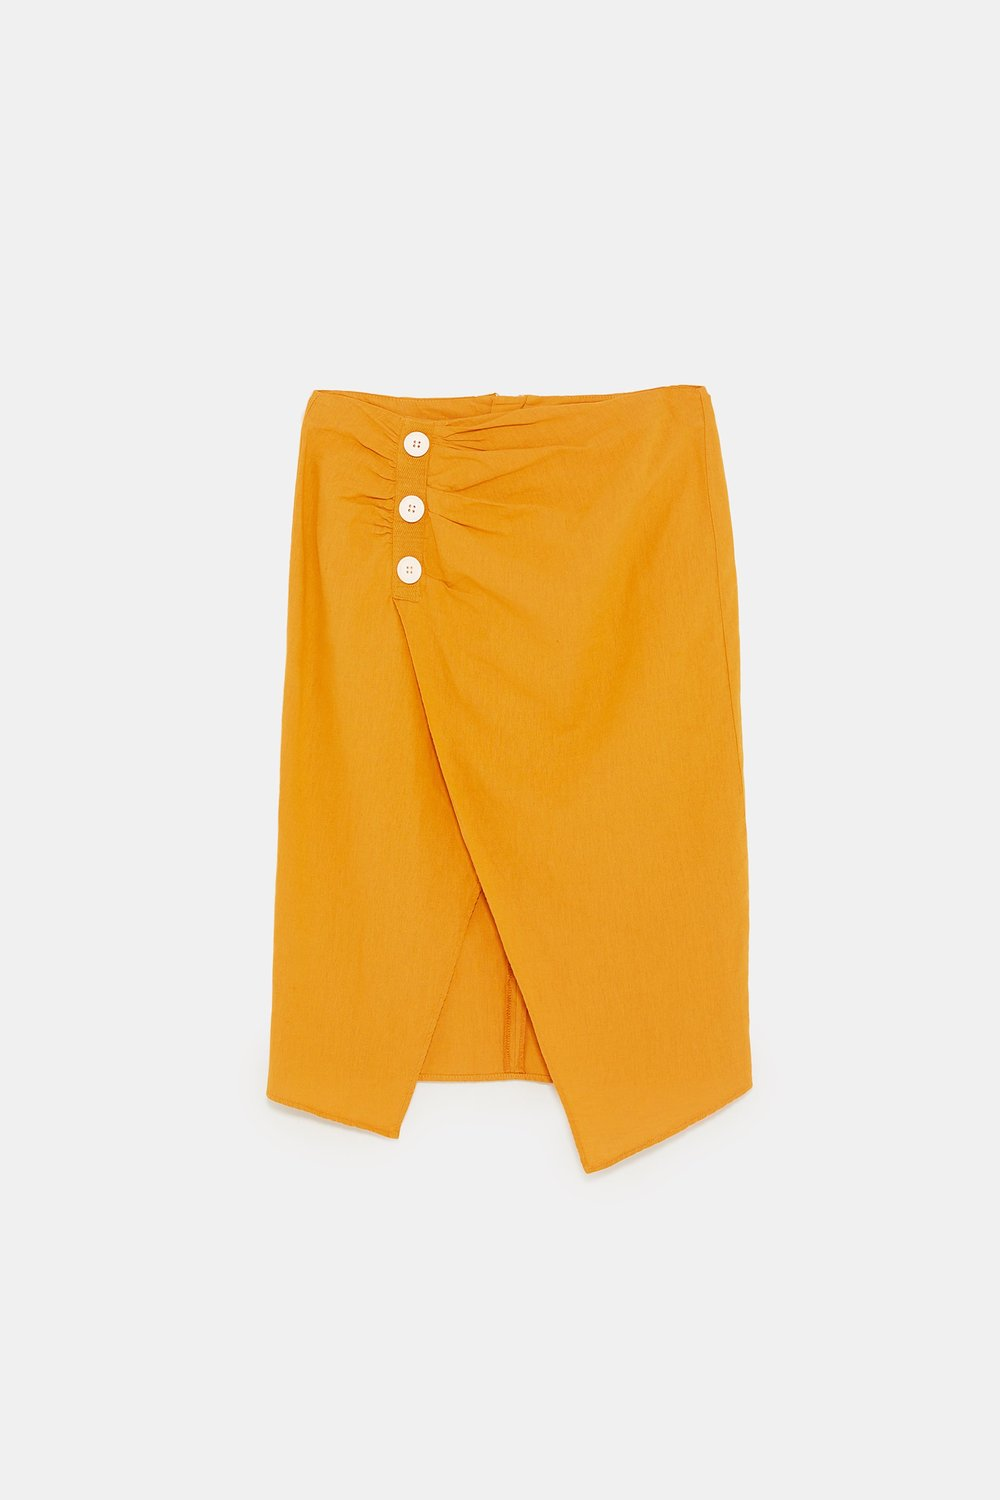 https://www.zara.com/ca/en/linen-skirt-with-ruching-p07946496.html?v1=6867602&v2=1110502